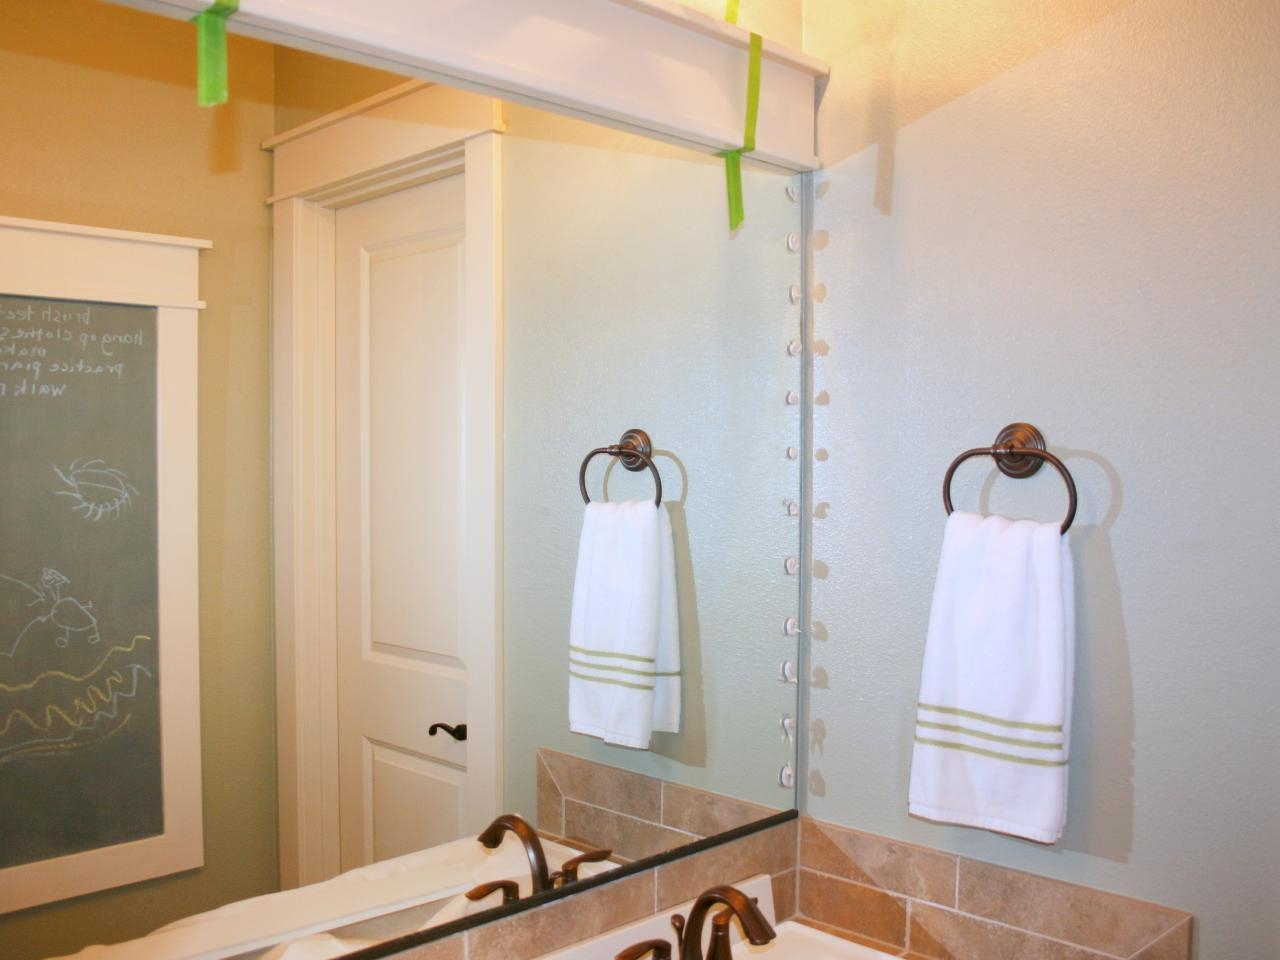 How To Frame A Mirror | Hgtv In Wall Mirrors For Bathrooms (Image 10 of 20)